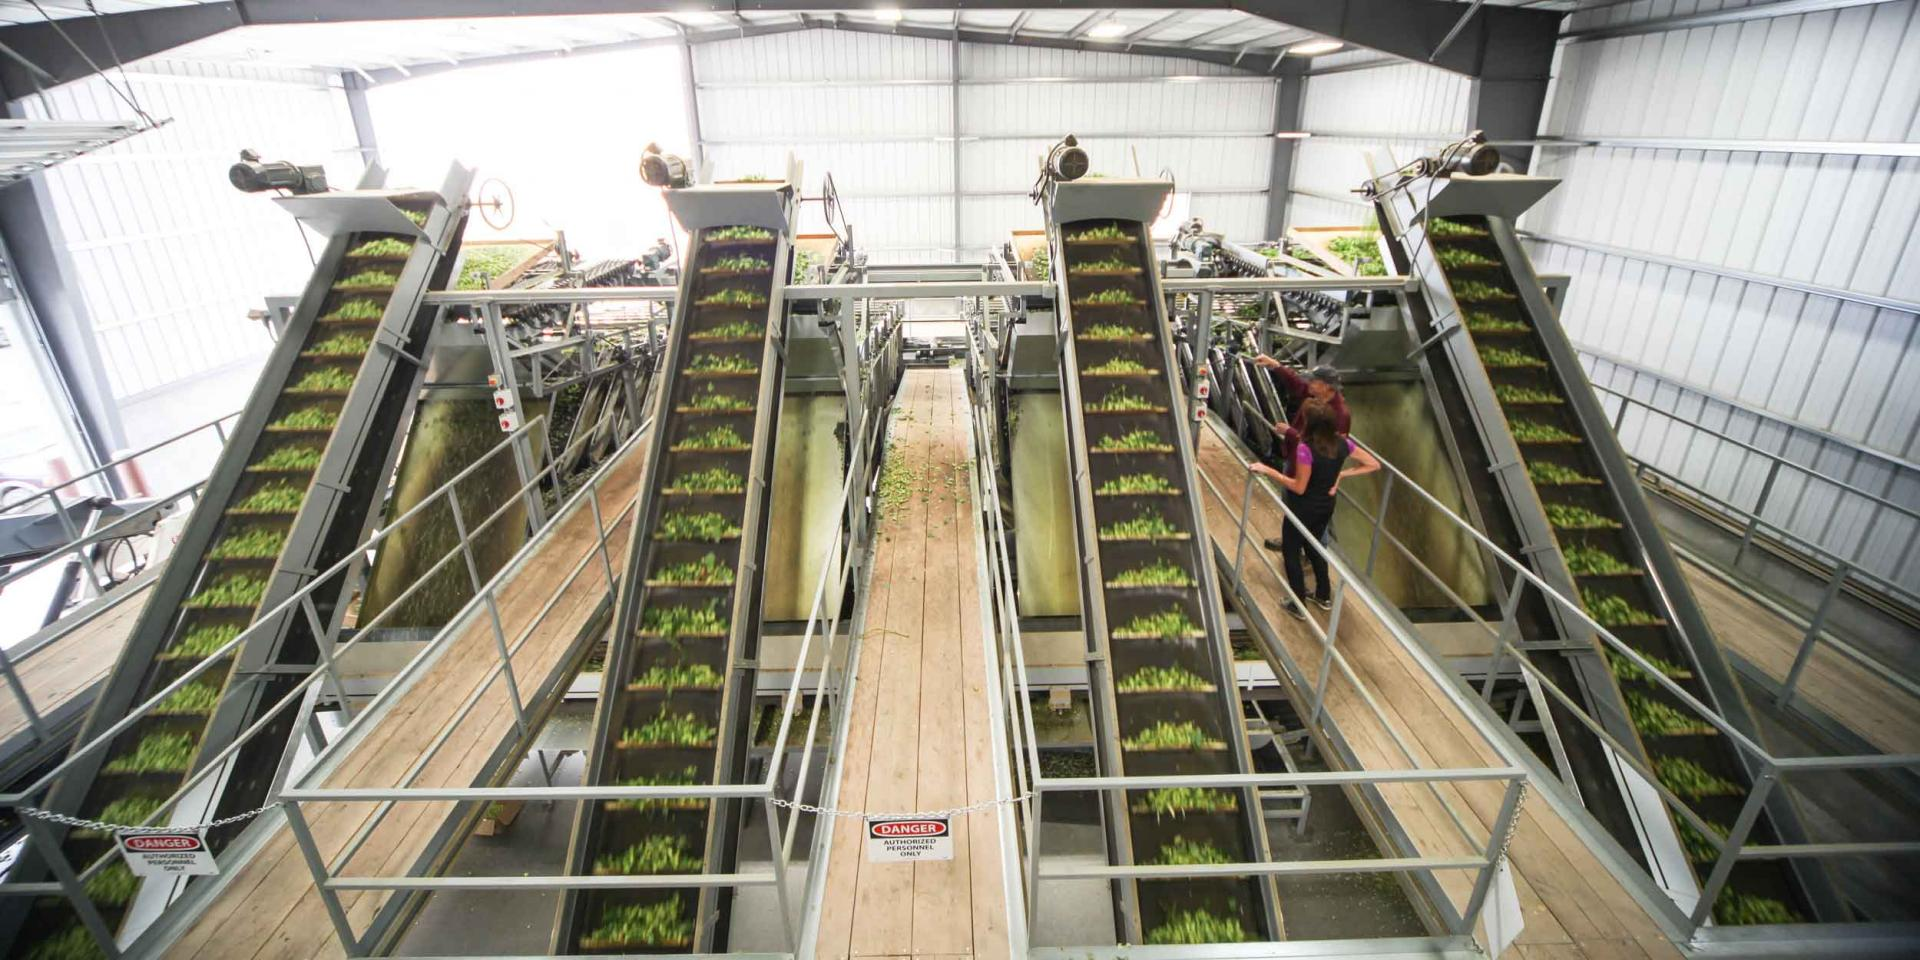 Conveyors with Hops